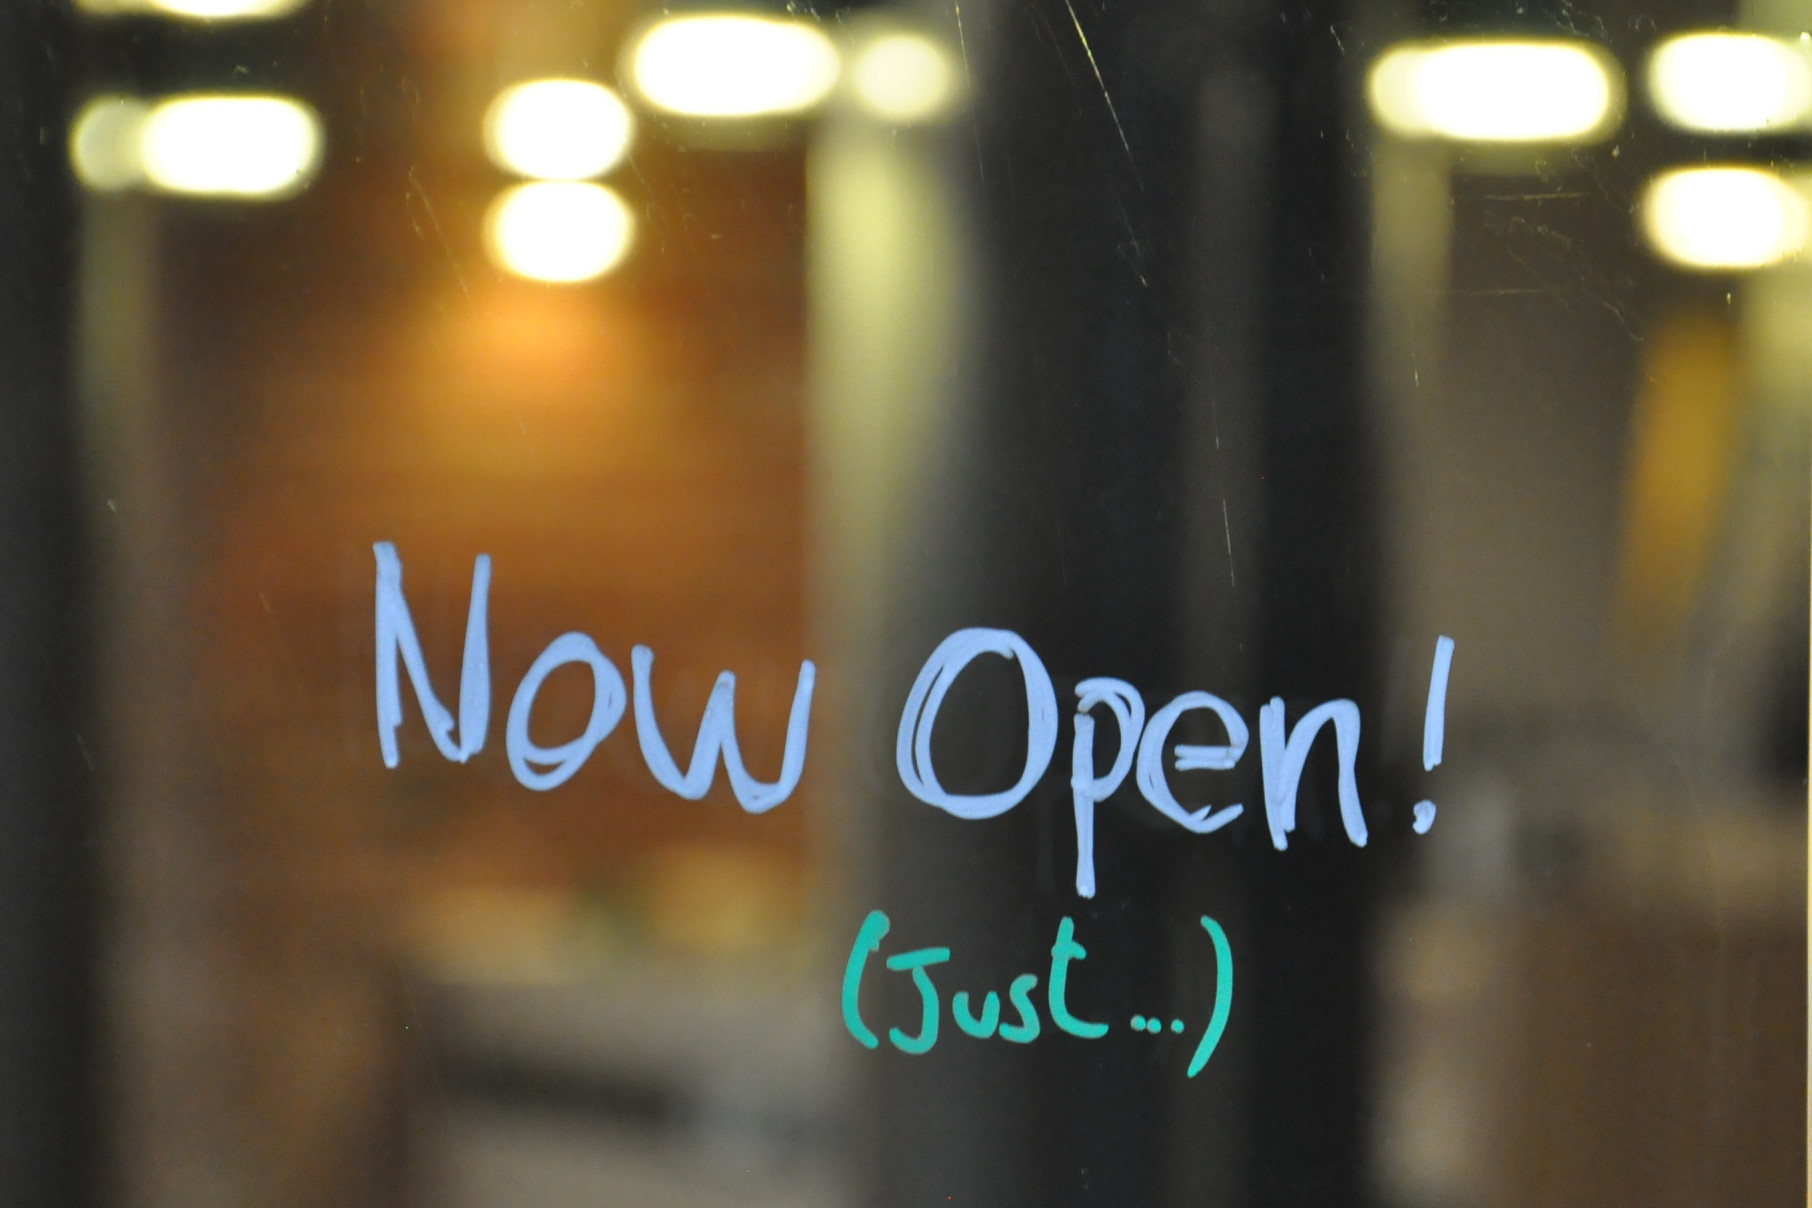 "The words ""Now Open!"" written in blue on the window of Ancoats, with the ""(just...)"" added underneath in green."